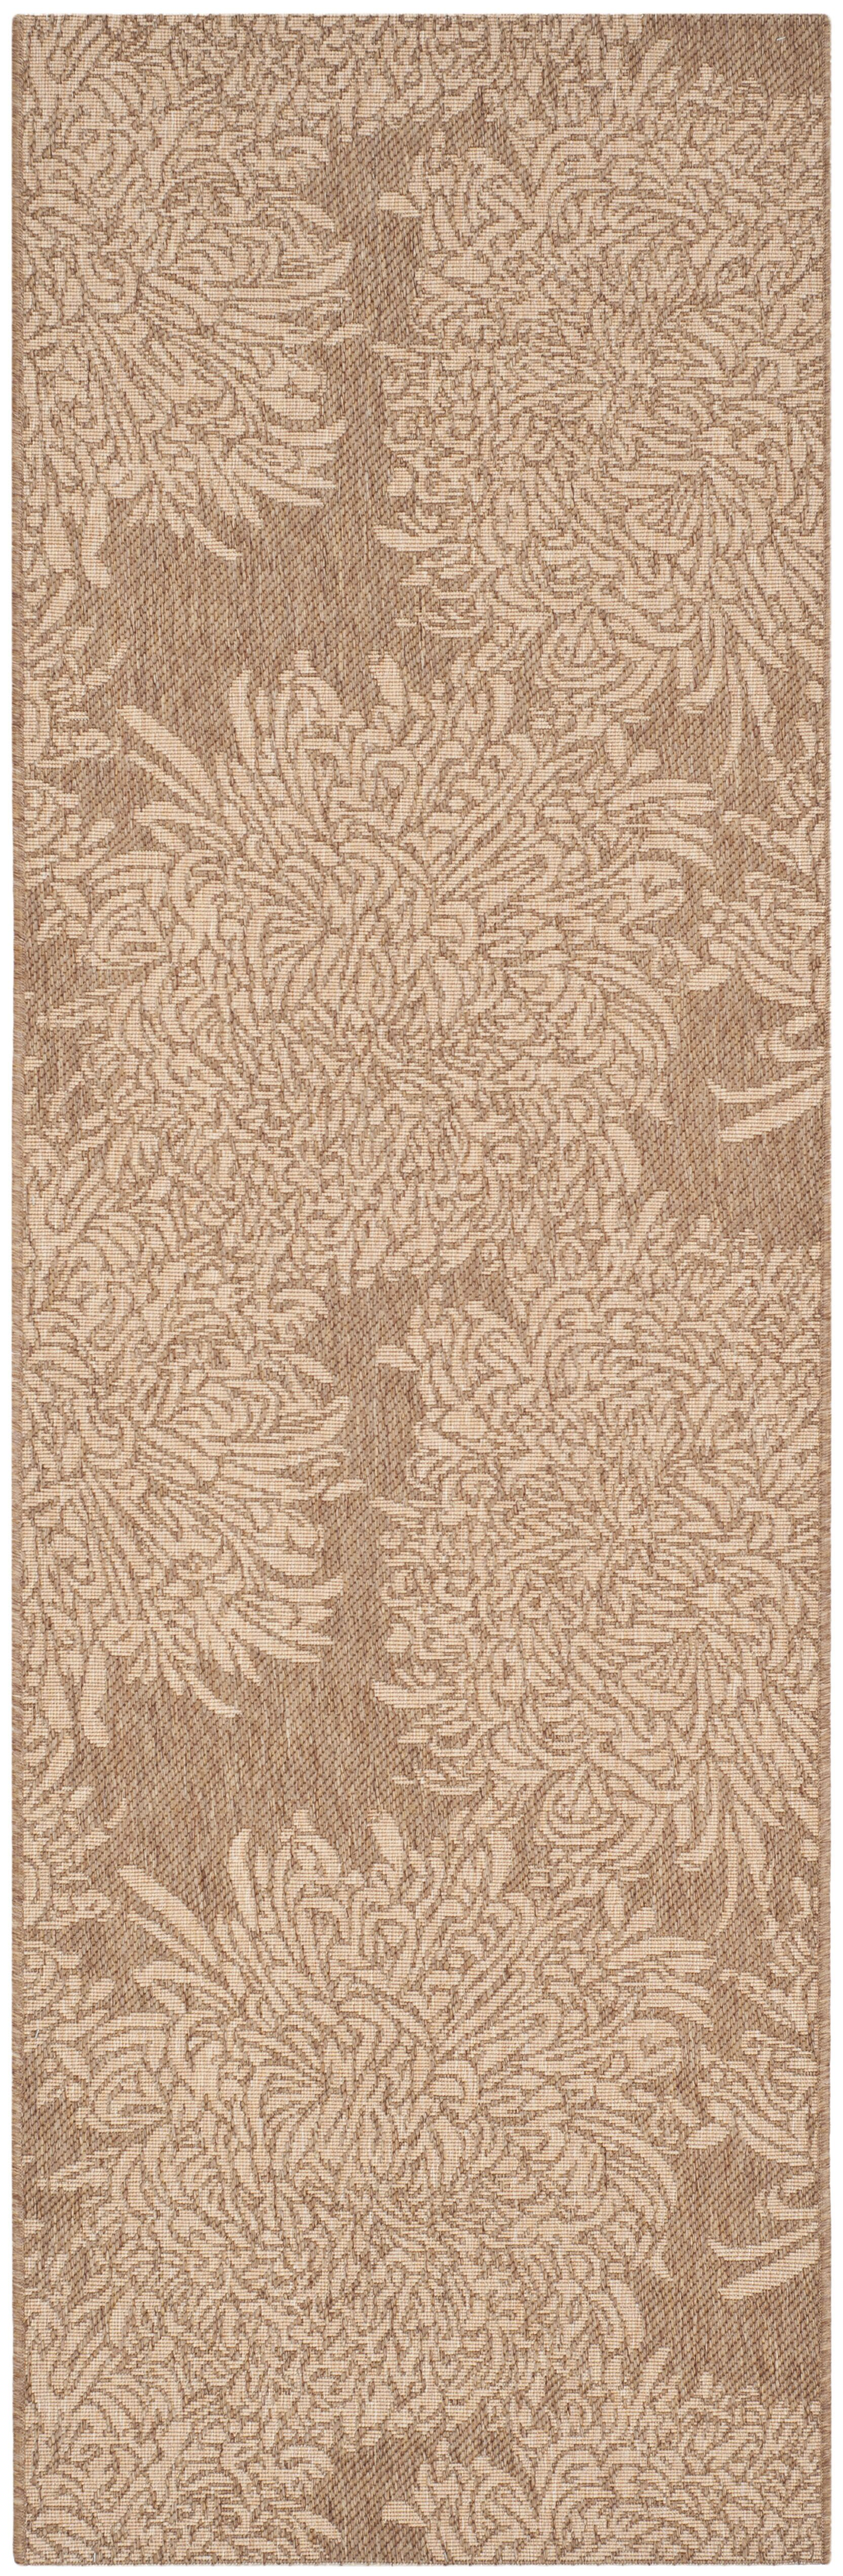 Chrysanthemum Beige/Brown Area Rug Rug Size: Rectangle 6'7